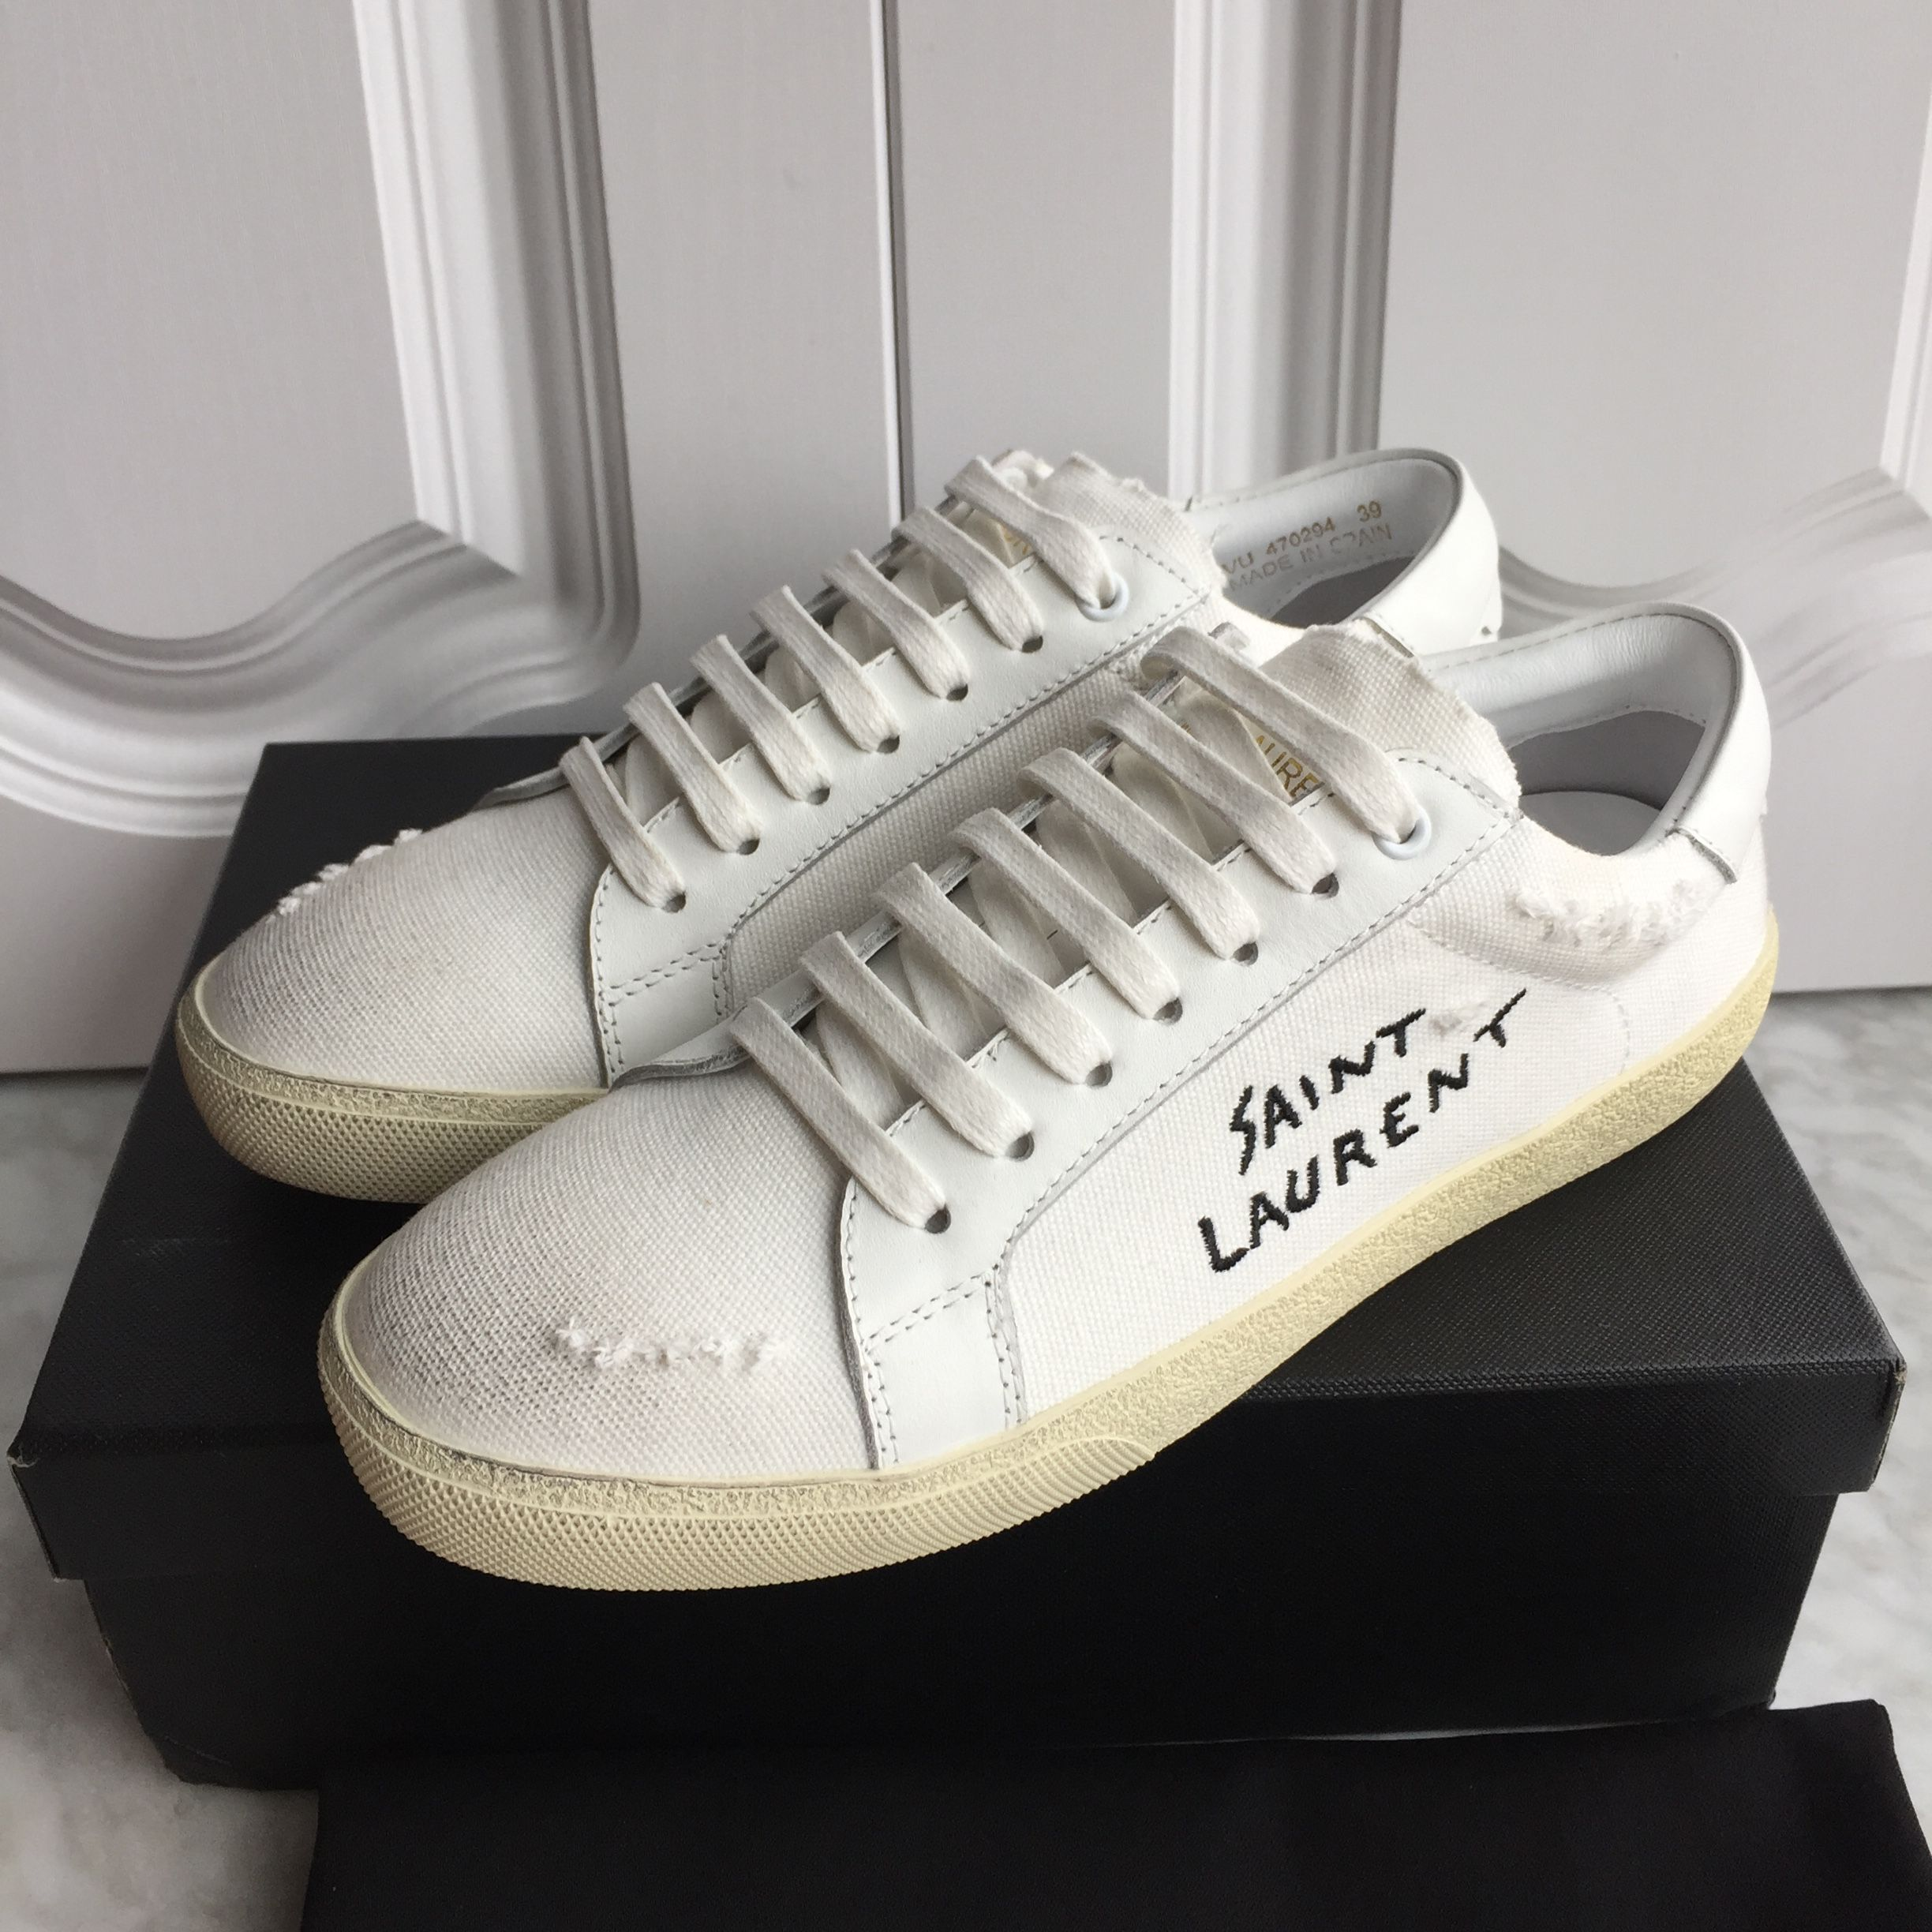 5c3efcfb573 Ysl Saint Laurent woman shoes canvas sneakers dirty old making design